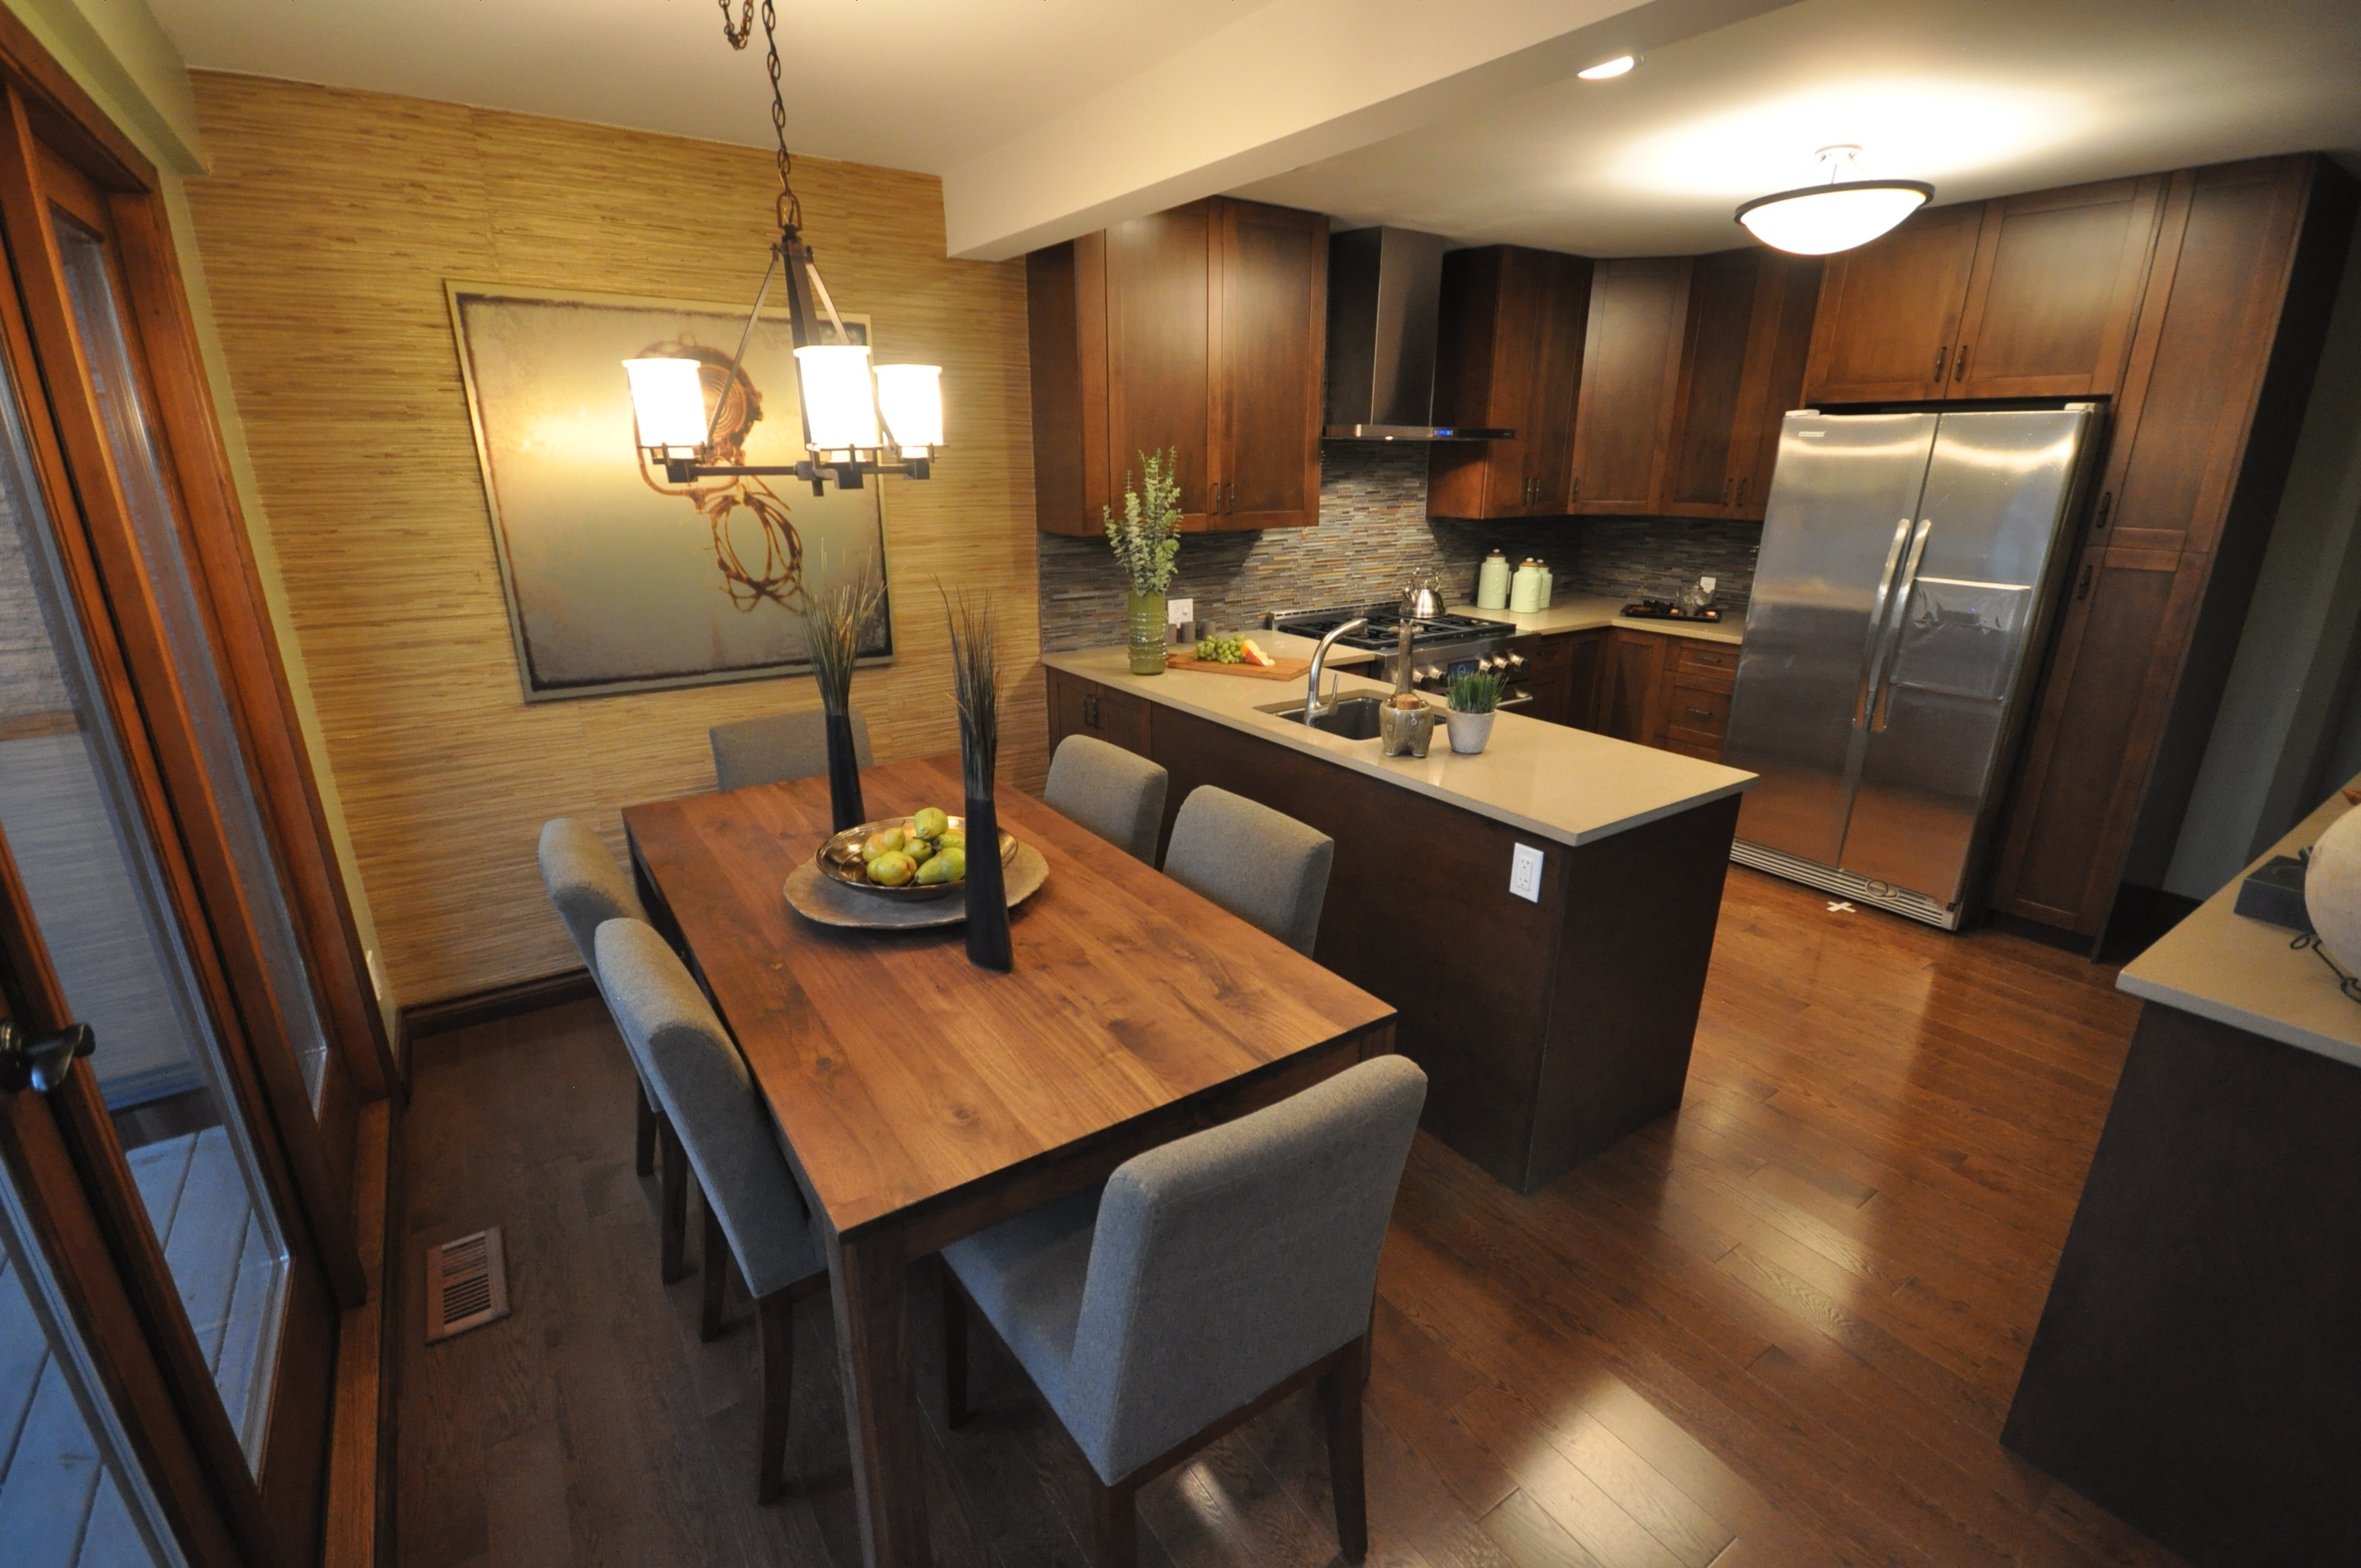 Minimalist Modern Open Kitchen And Dining Room Combo With Warm Wood Accents (View 14 of 20)